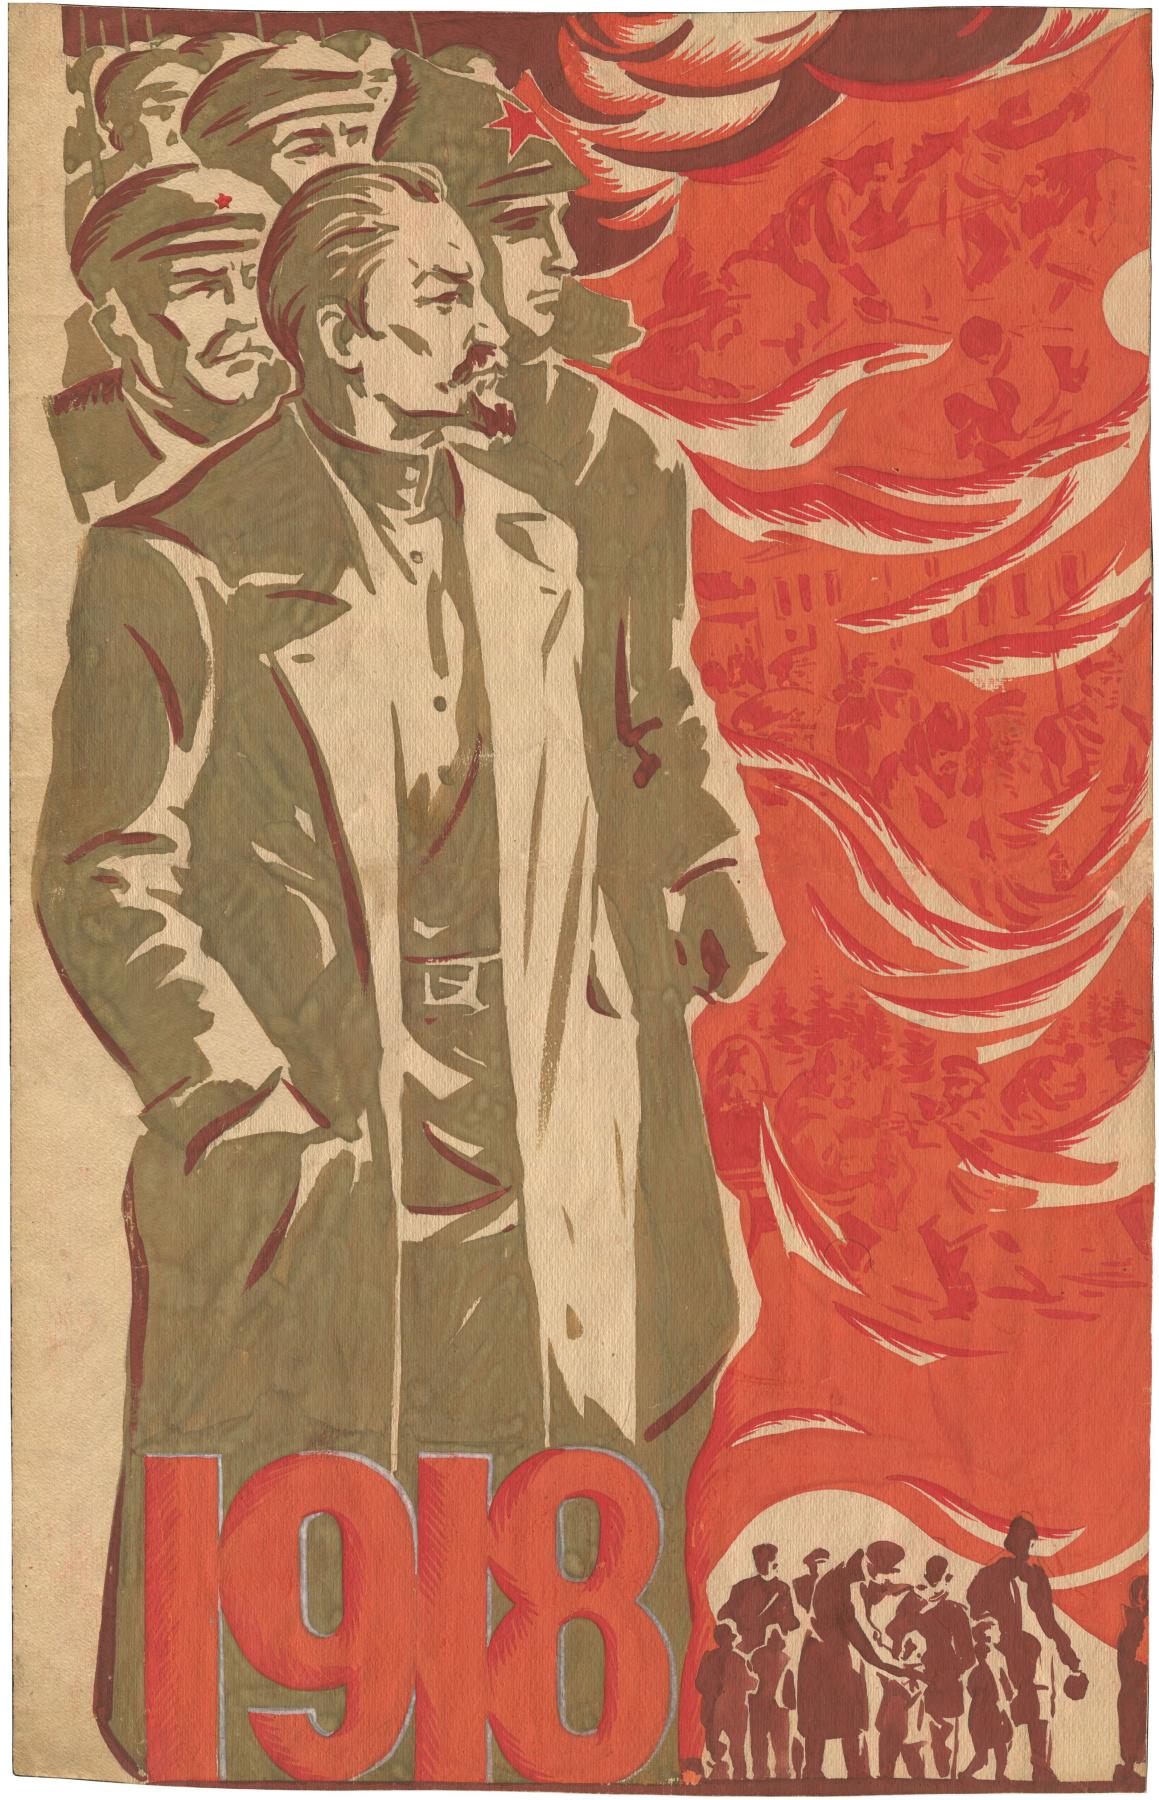 Alexandrovich Rudolf Pavlov. 1918 year. The revolution in Russia, continuity. Poster. Sketch, part 1.